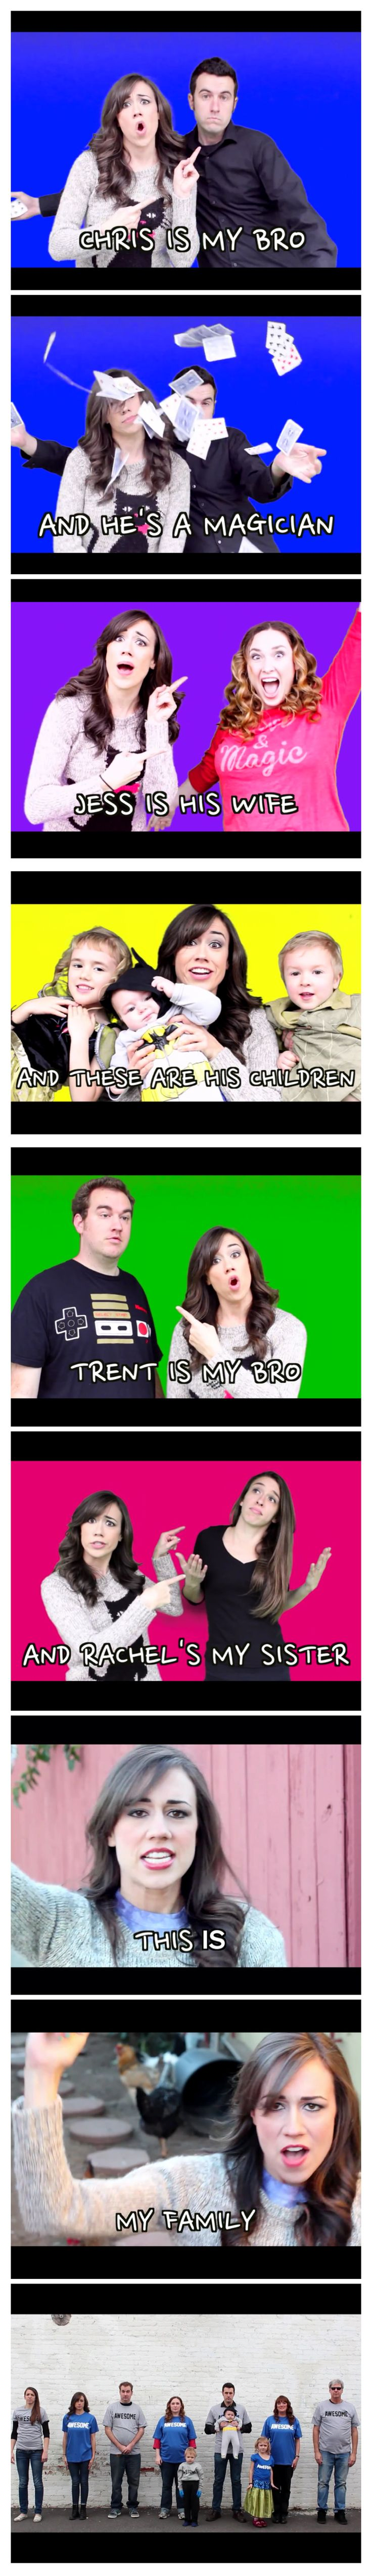 Colleen Ballinger - My Family btw this video is hilarious